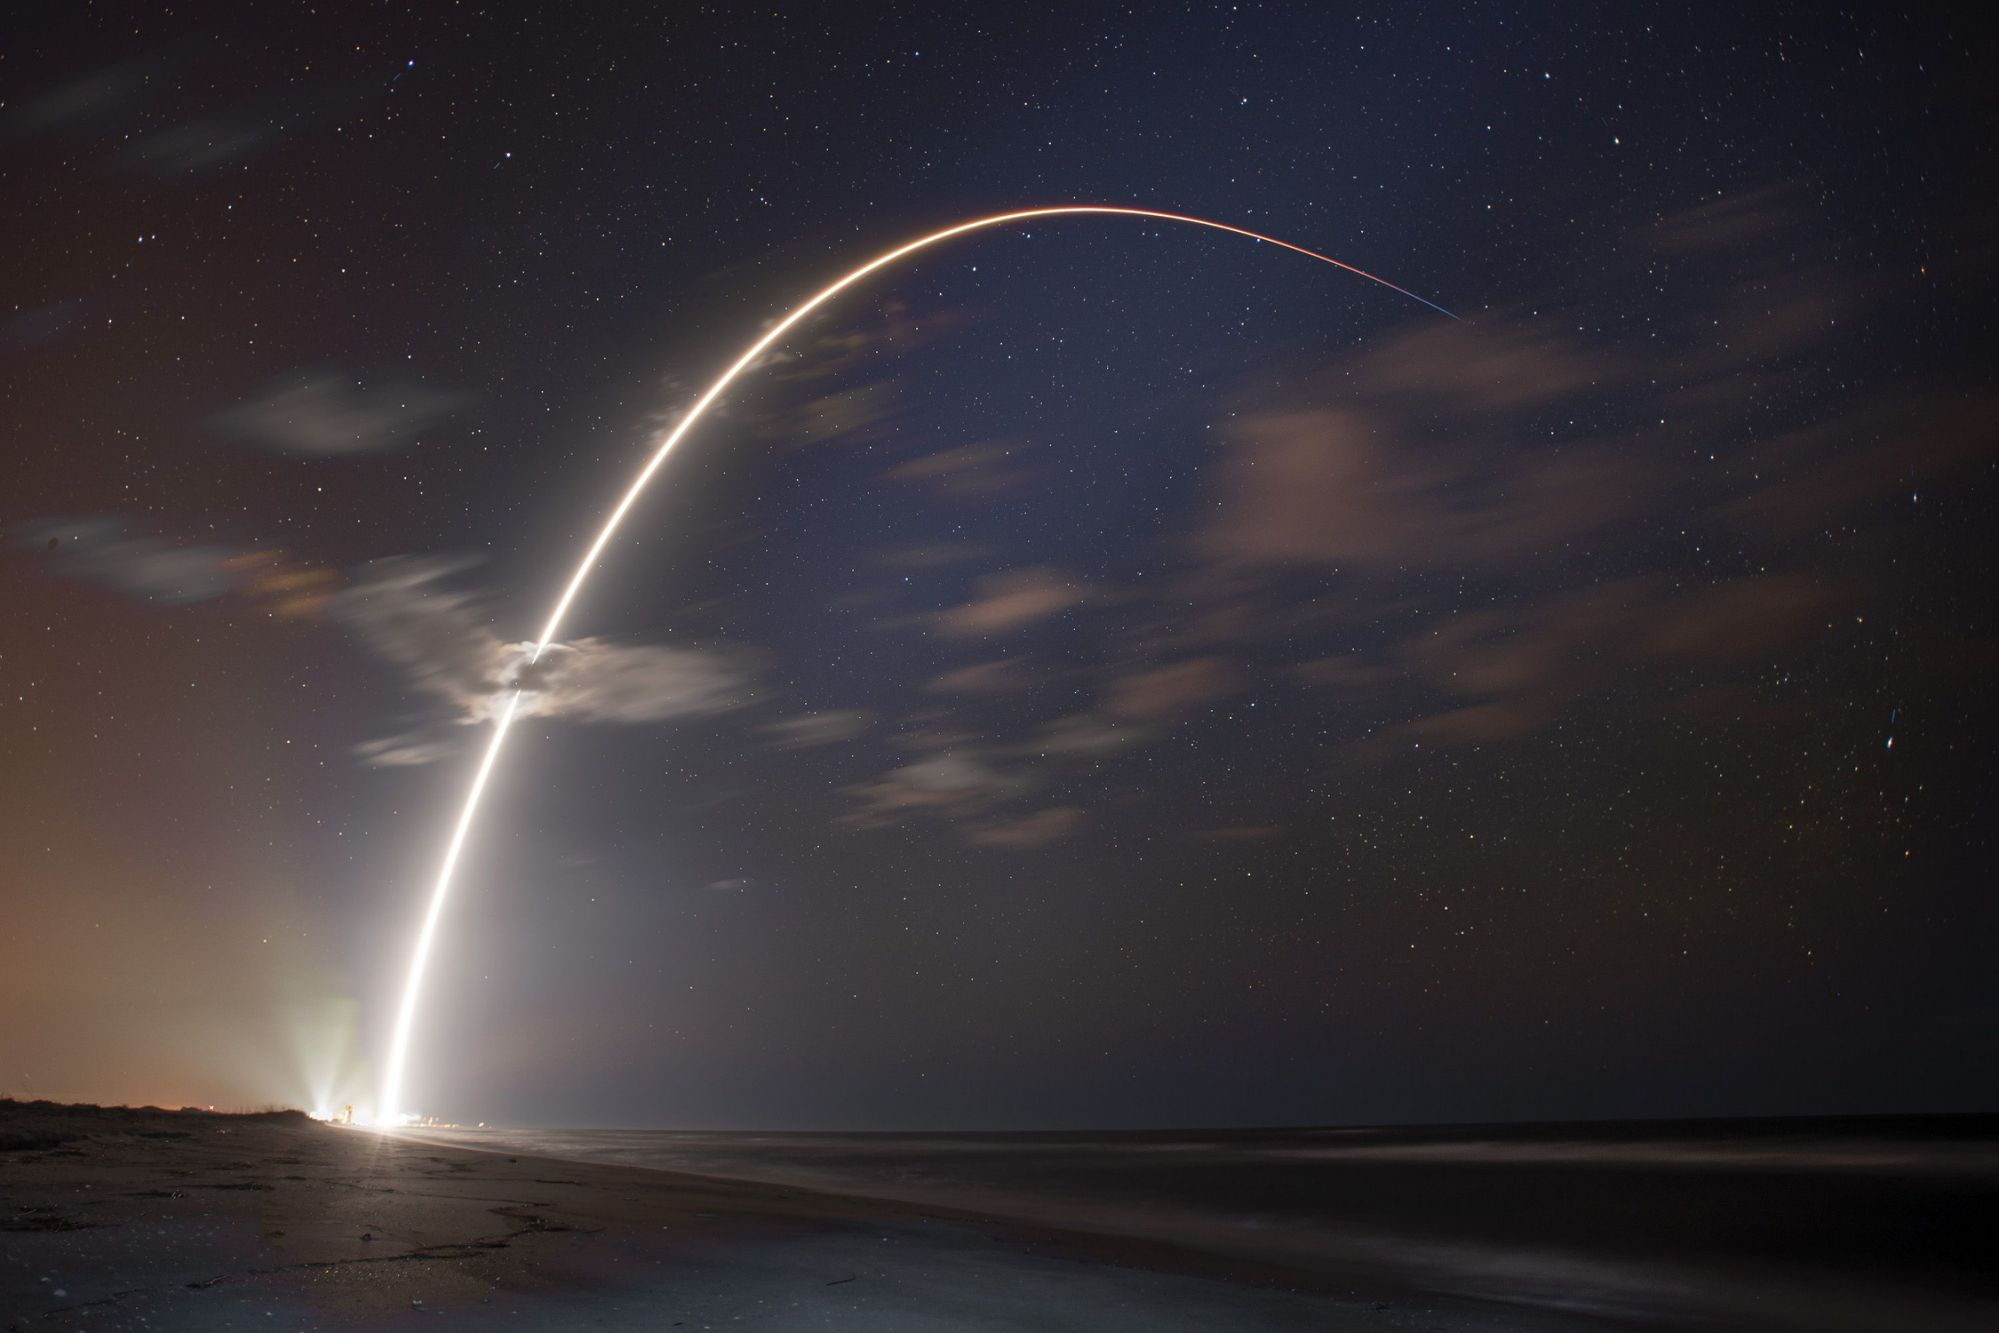 SpaceX launches 60 new Starlink satellites just one week after the last batch – Yahoo Movies Canada